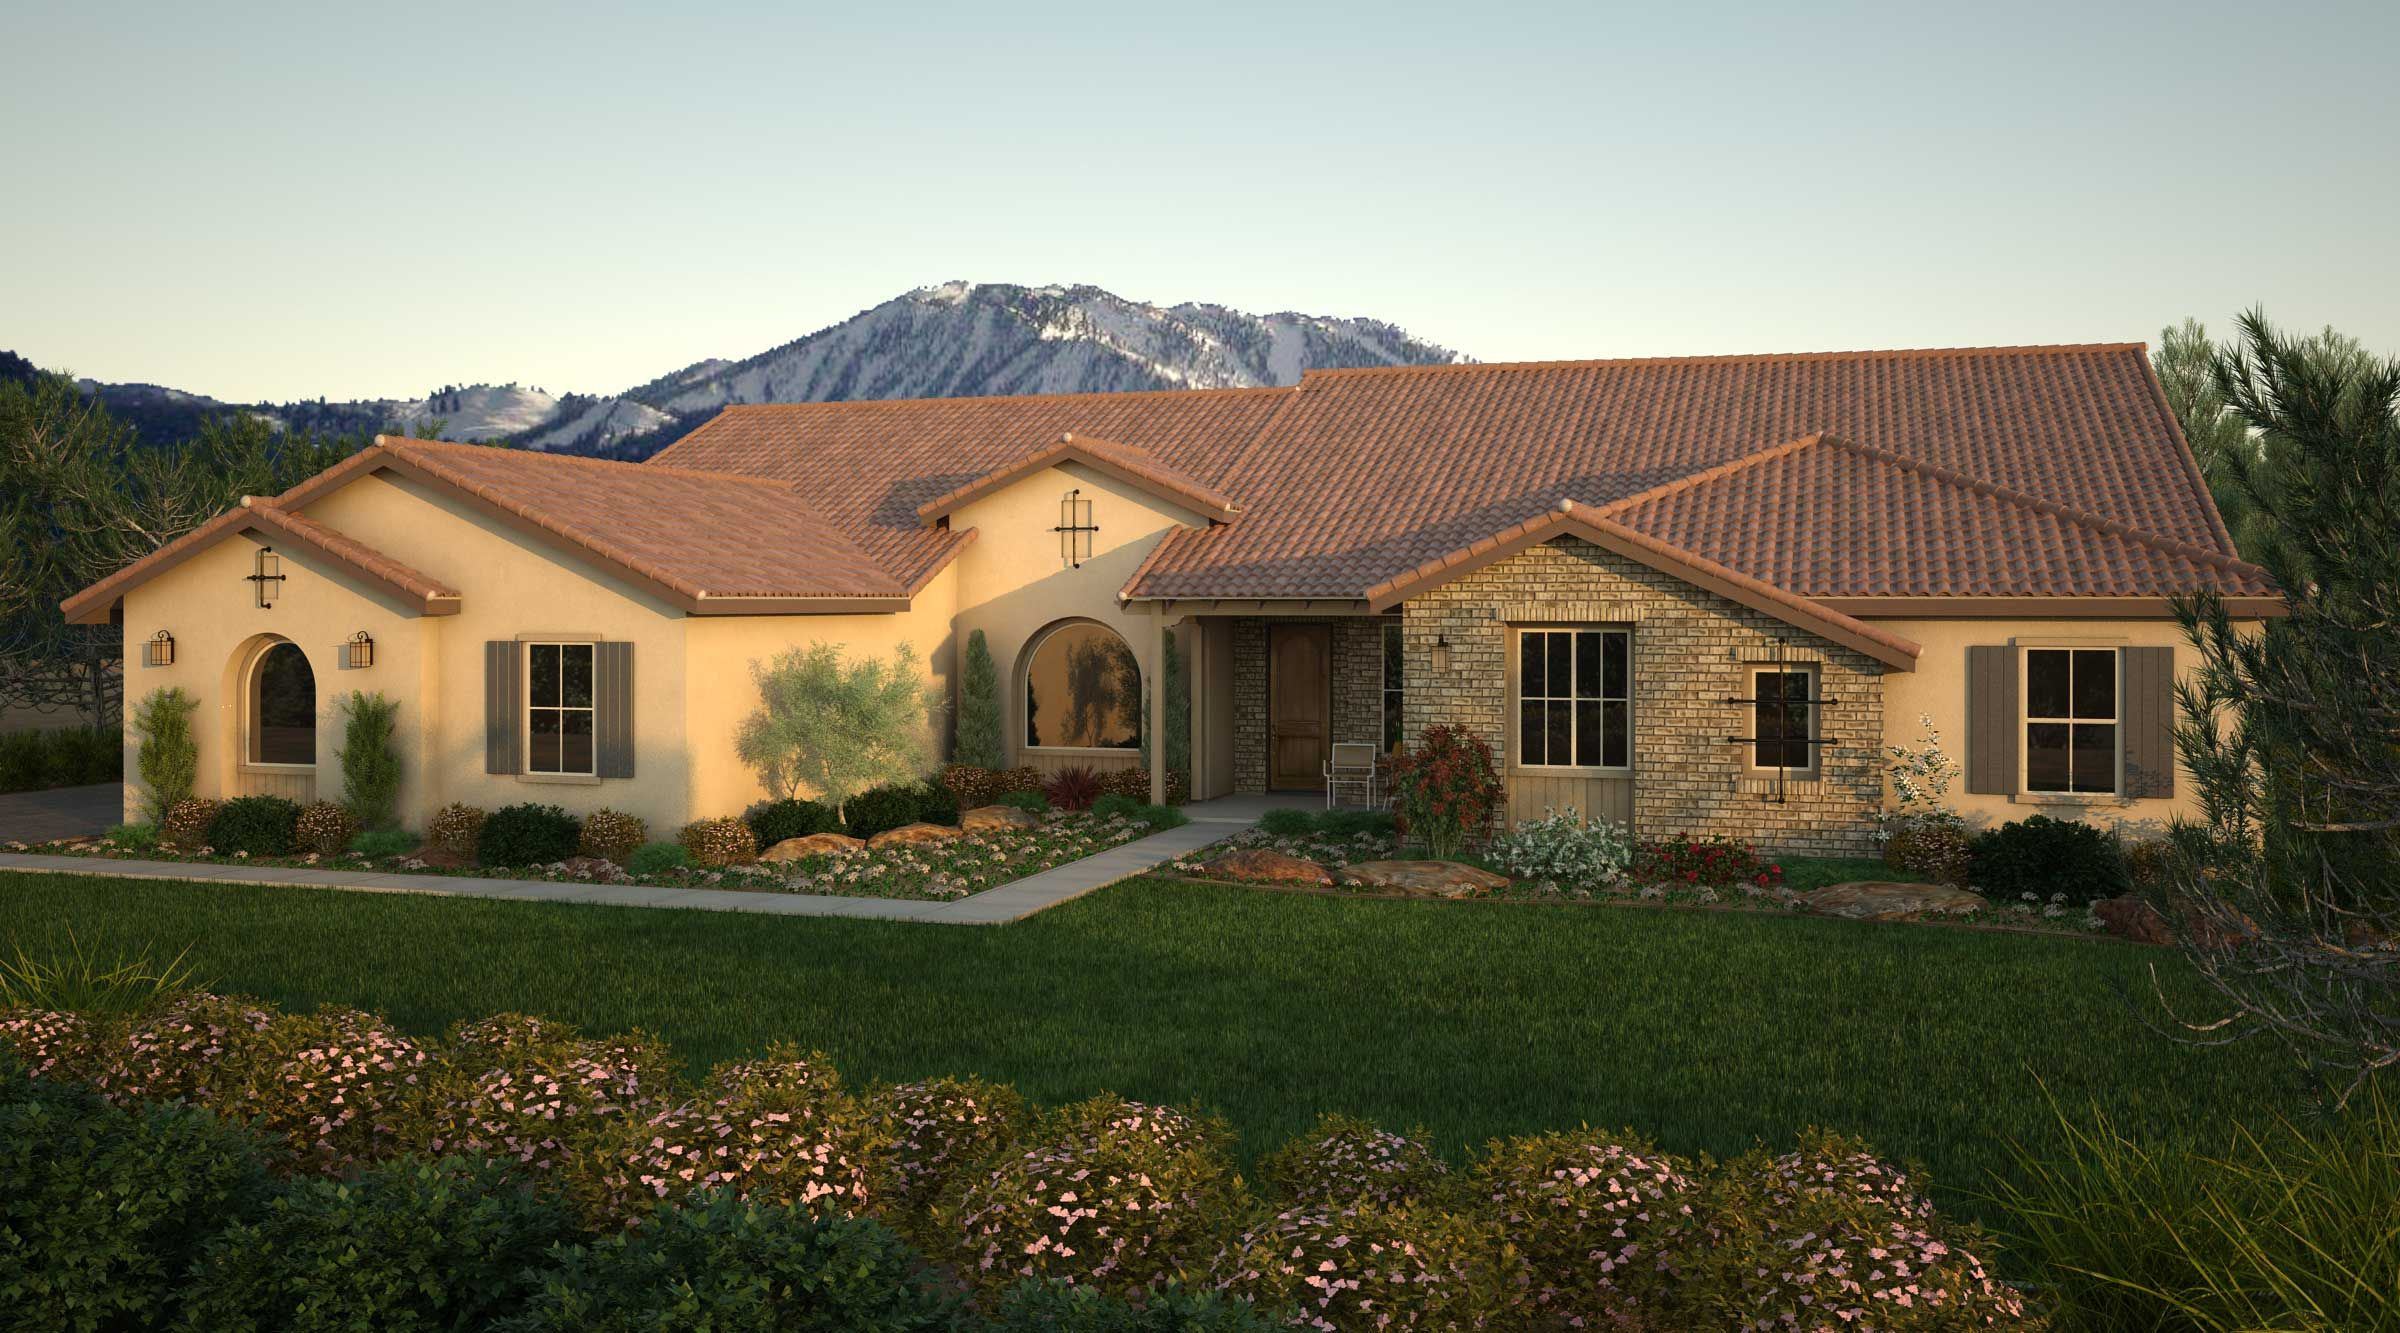 Le Pinot Grigio Spanish Ranch Jpg 2 400 1 333 Pixels New Homes For Sale New Homes Home